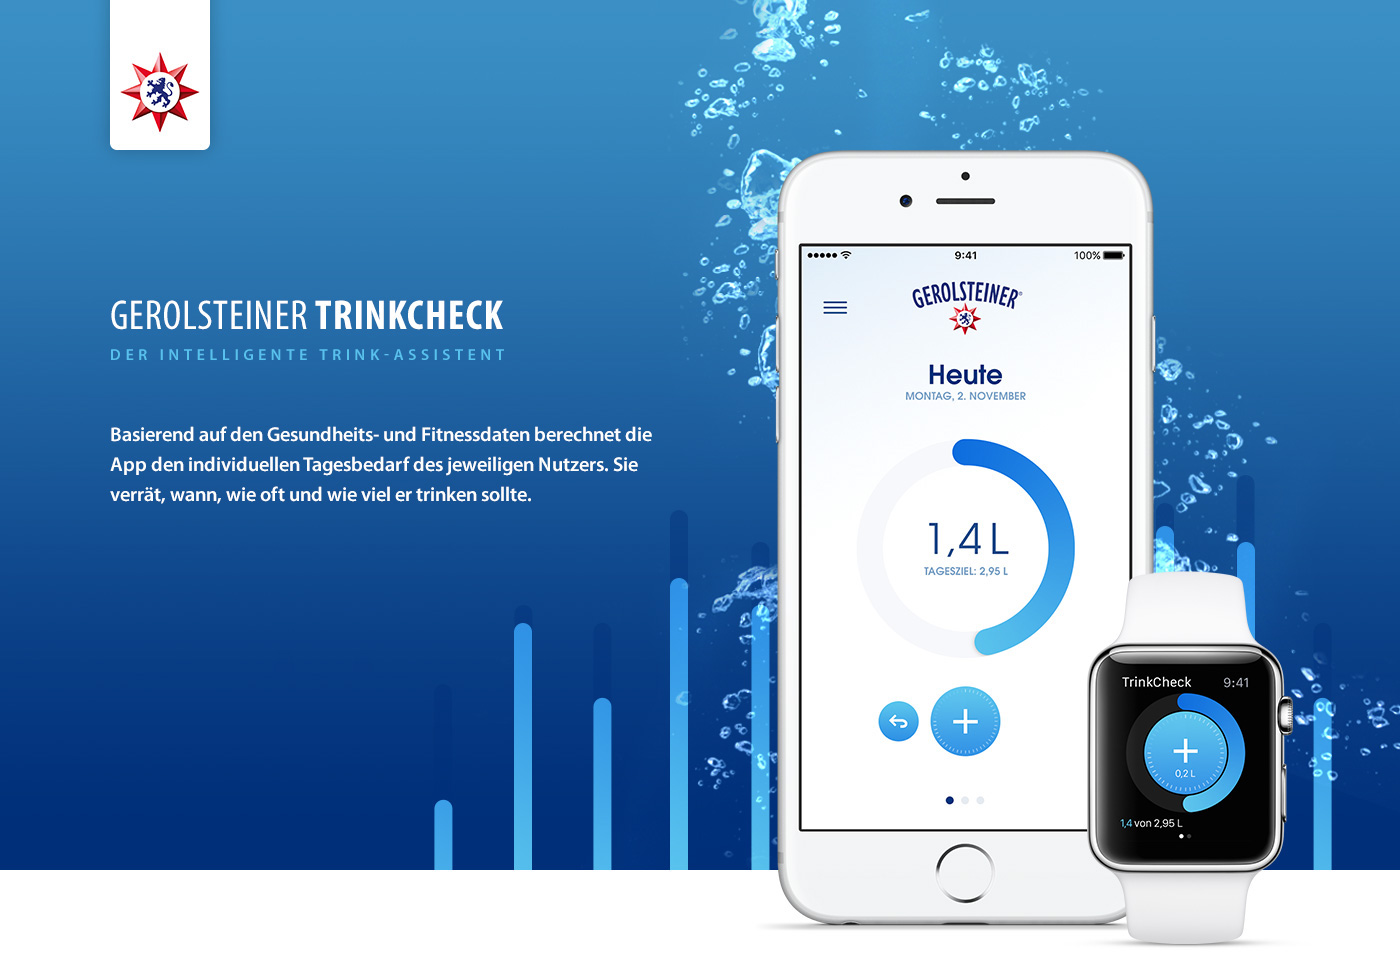 water mineralwater drink track app Native ios check quantified gradient White blue bubbles messure